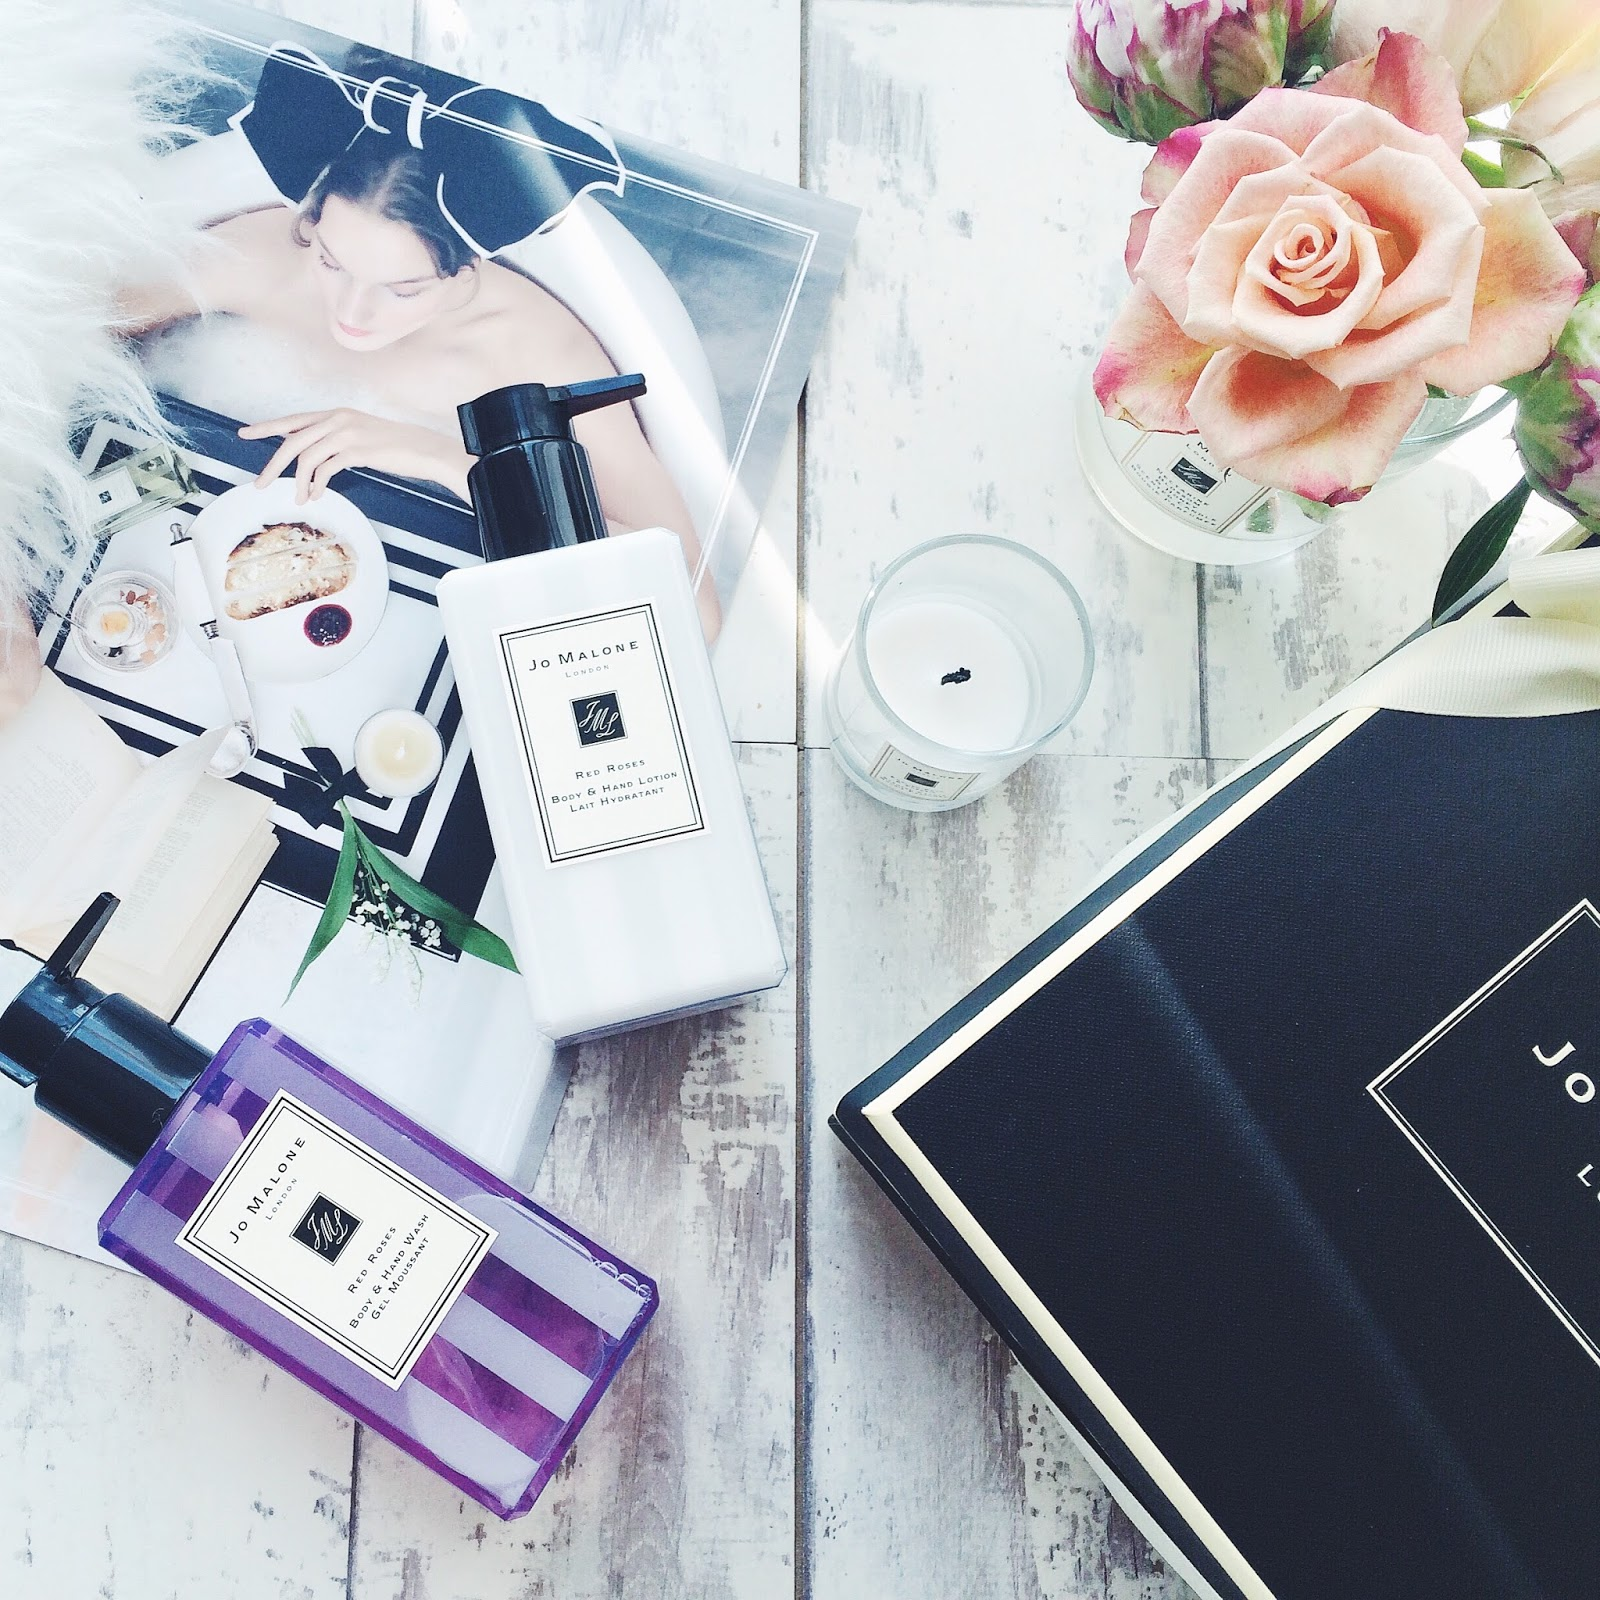 Jo Malone Bath and Body